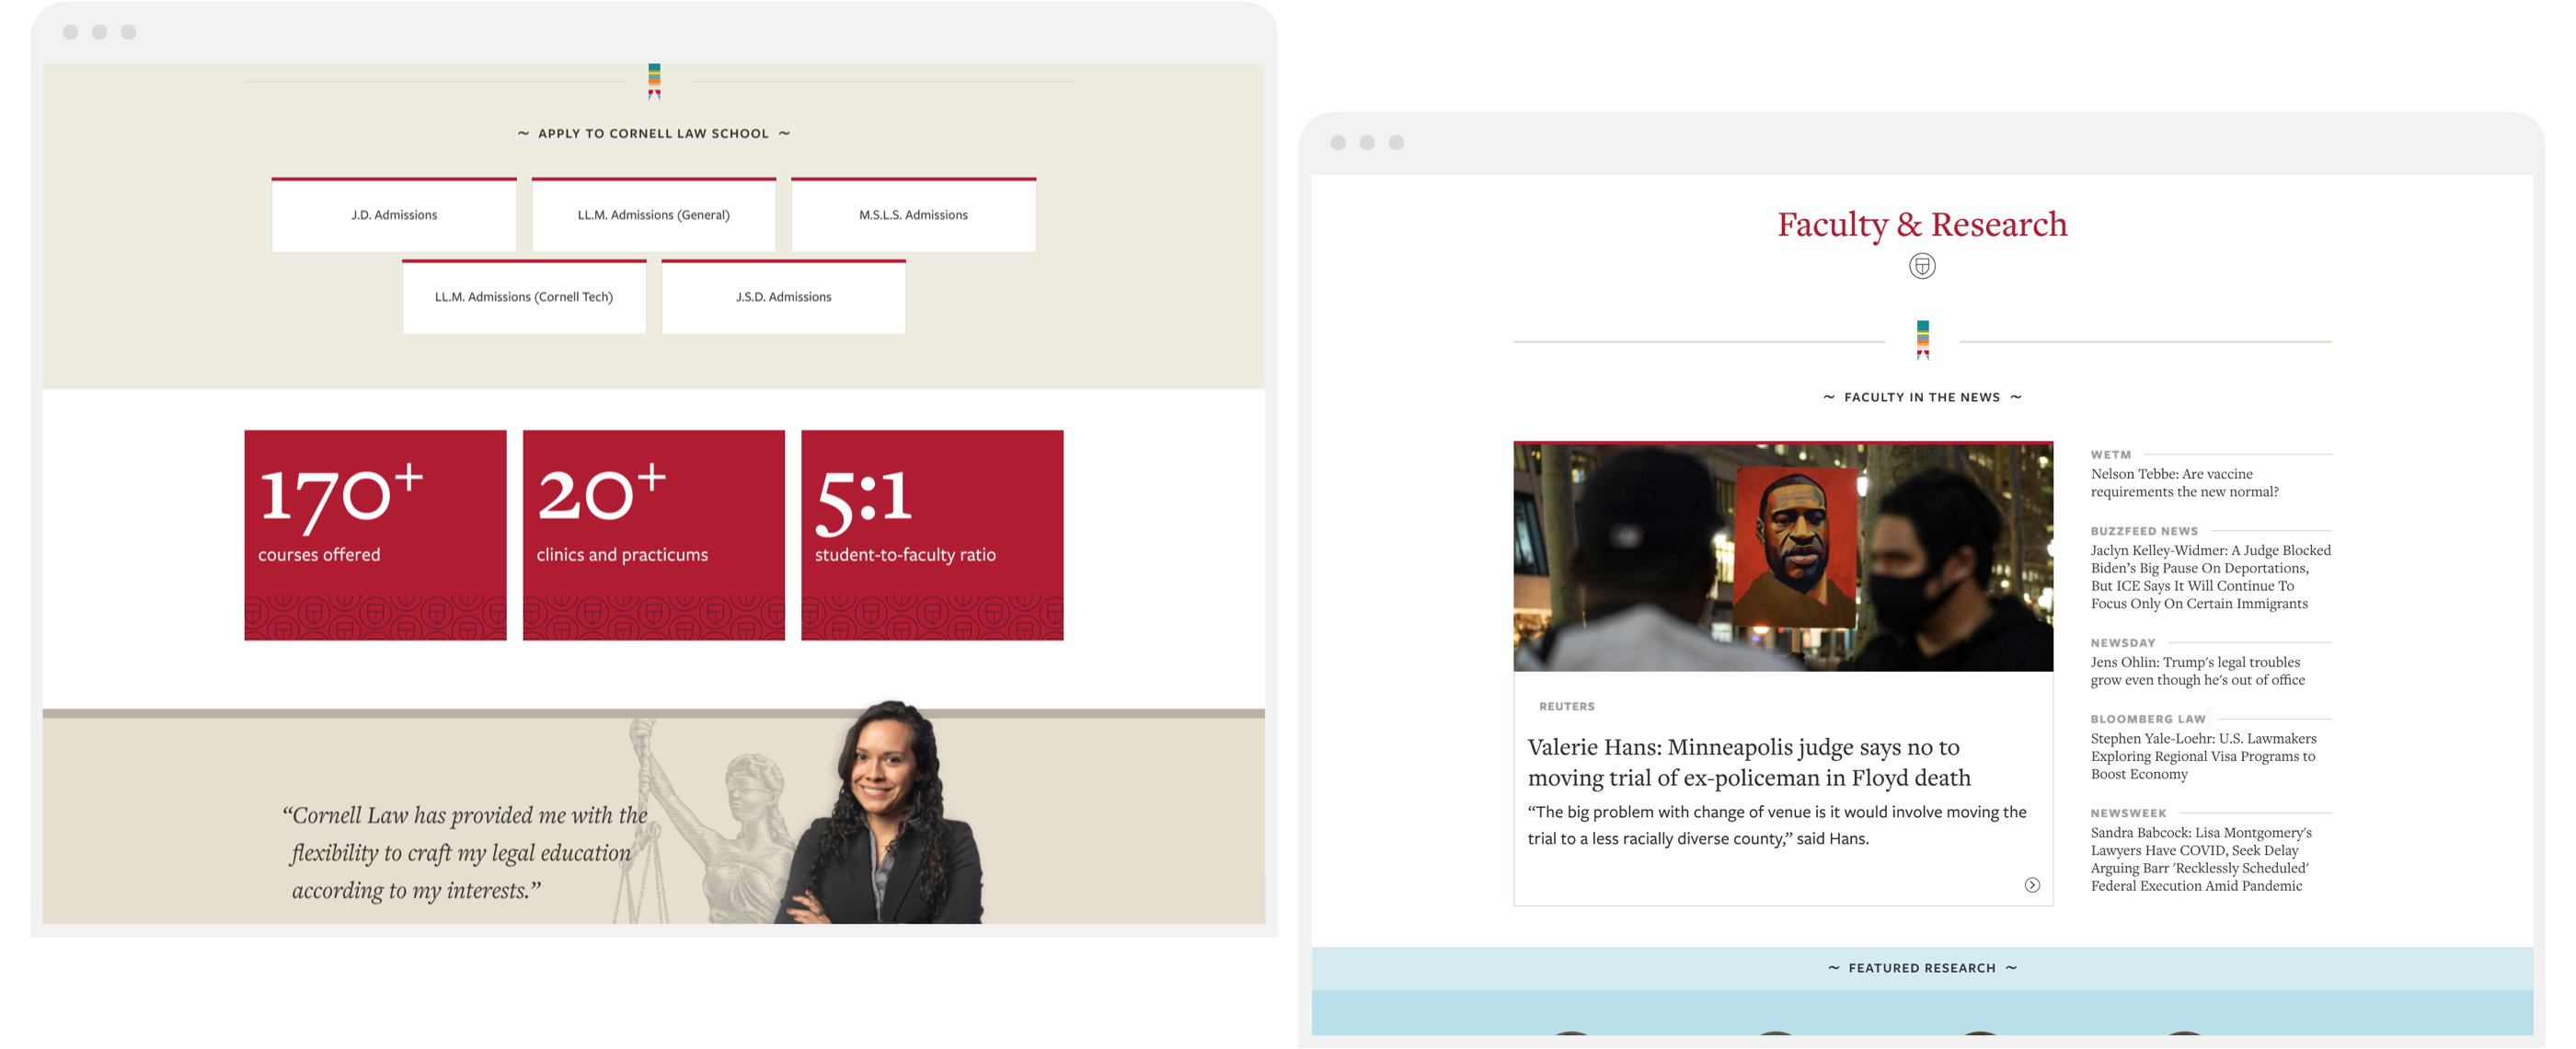 New components on the Cornell Law website